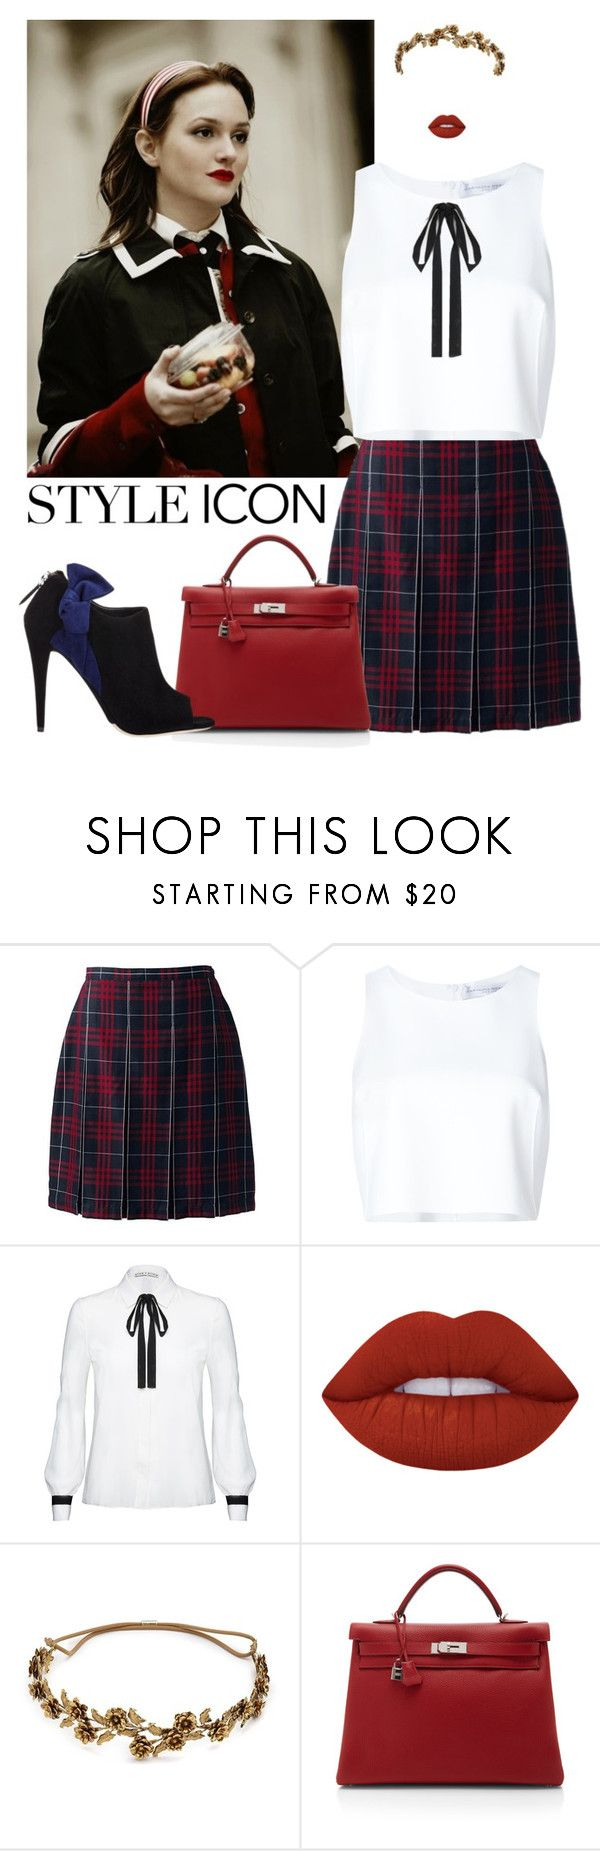 """dress like blair waldorf"" by m-huber ❤ liked on Polyvore featuring Lands' End, Carolina Herrera, Alice + Olivia, Lime Crime, Jennifer Behr, Hermès, Miu Miu and pleatedskirts"